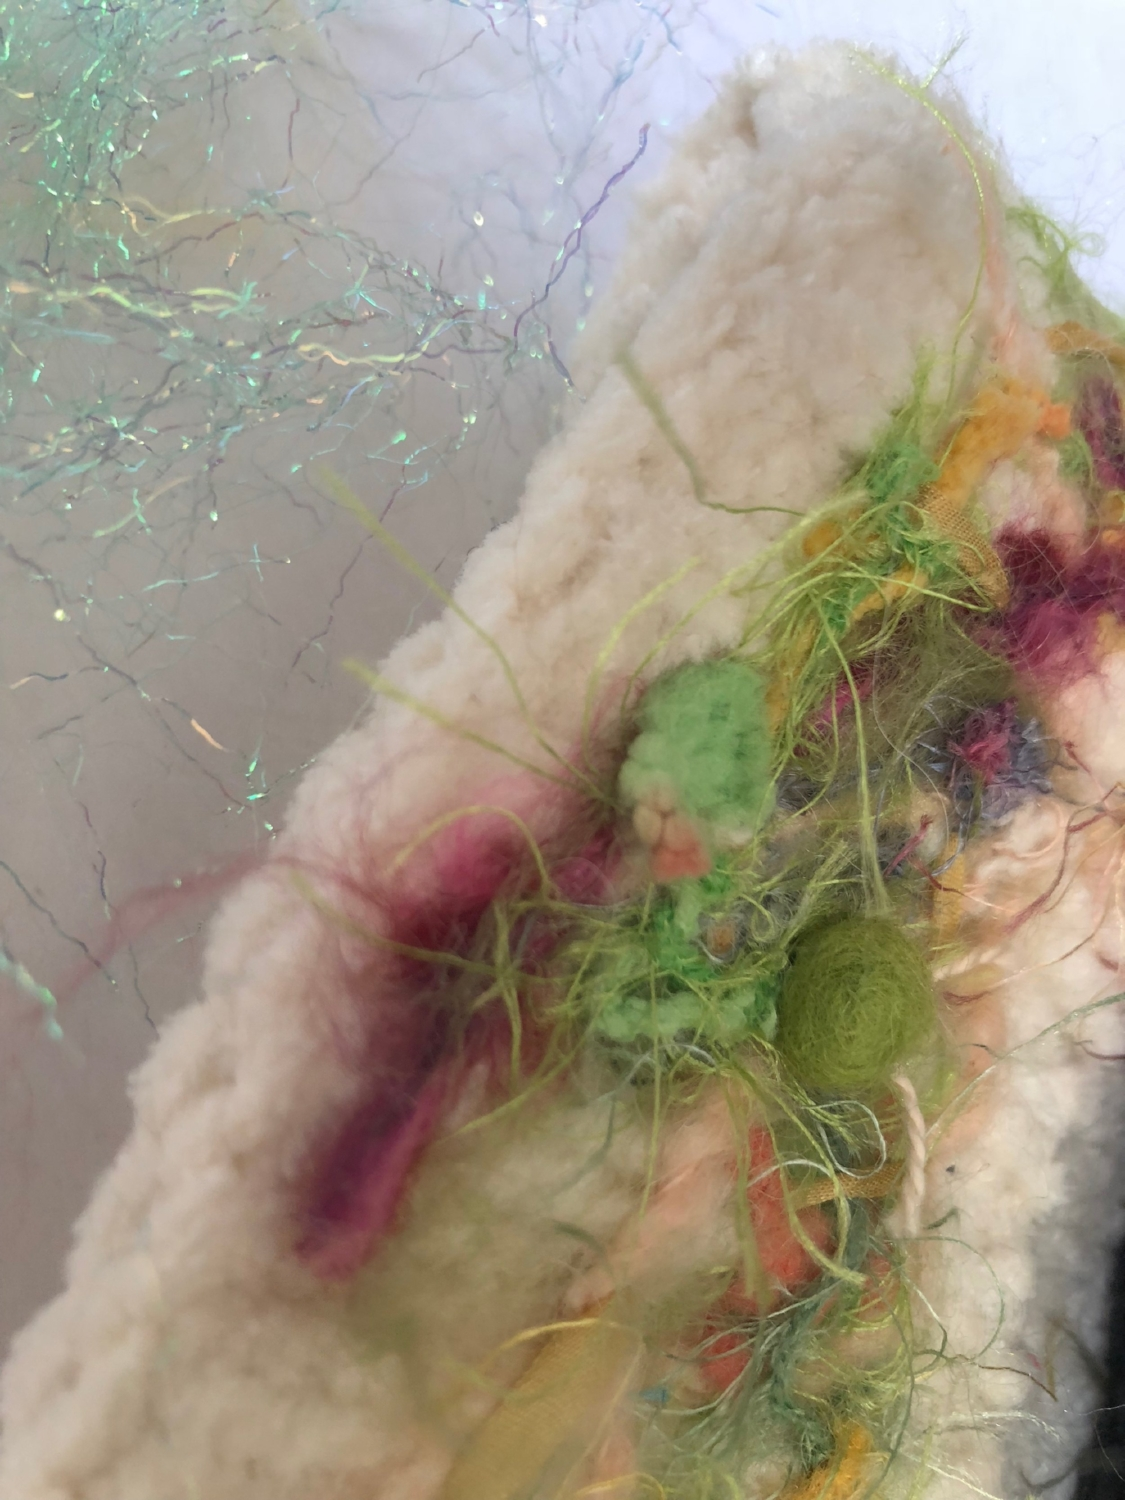 2 - After the felting, use buttons, beads, silk ribbon or small pom pons to add more texture and interest to your project. A tapestry needle and heavy thread, string or yarn will make sure your embellishments stay in place!